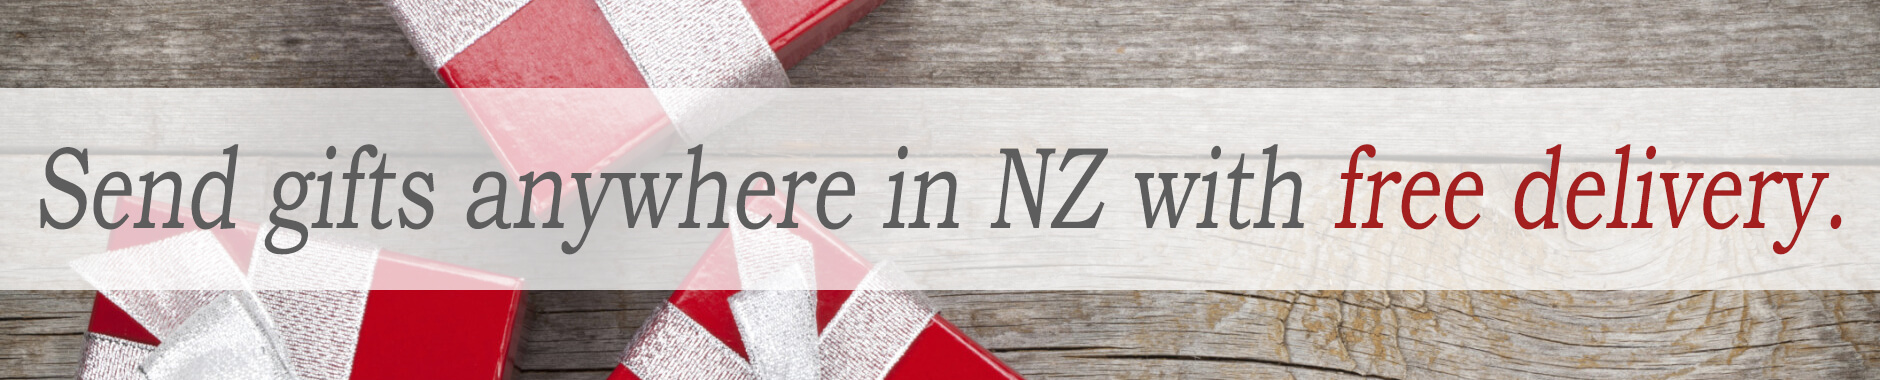 ... packed with pamper treats, gourmet food and fine wines from New Zealand, Australia and Europe, and spirits. Same day gift baskets delivery in Auckland.